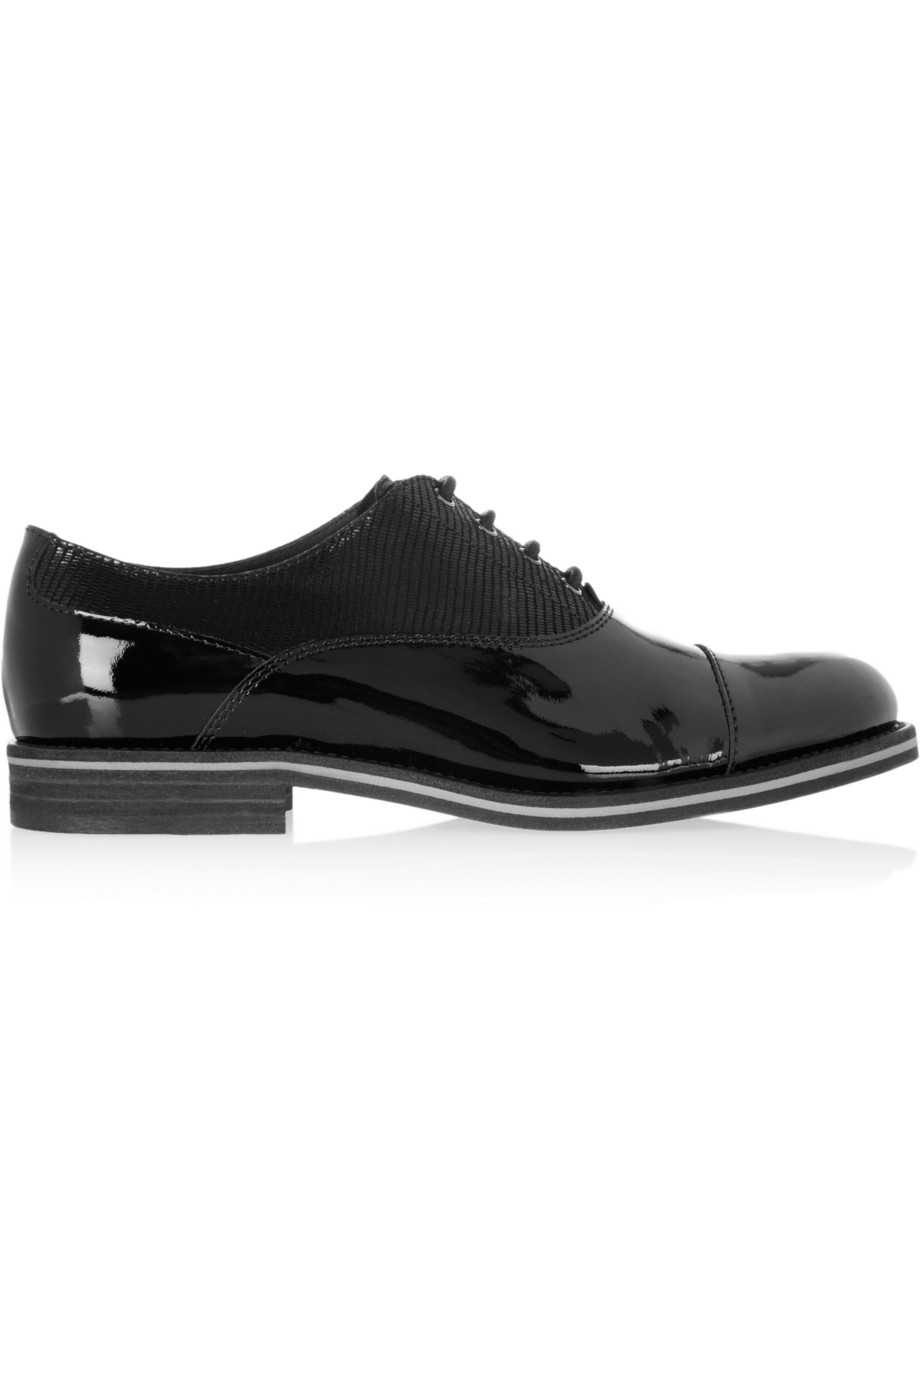 Lizard-effect paneled patent-leather brogues | THE OUTNET